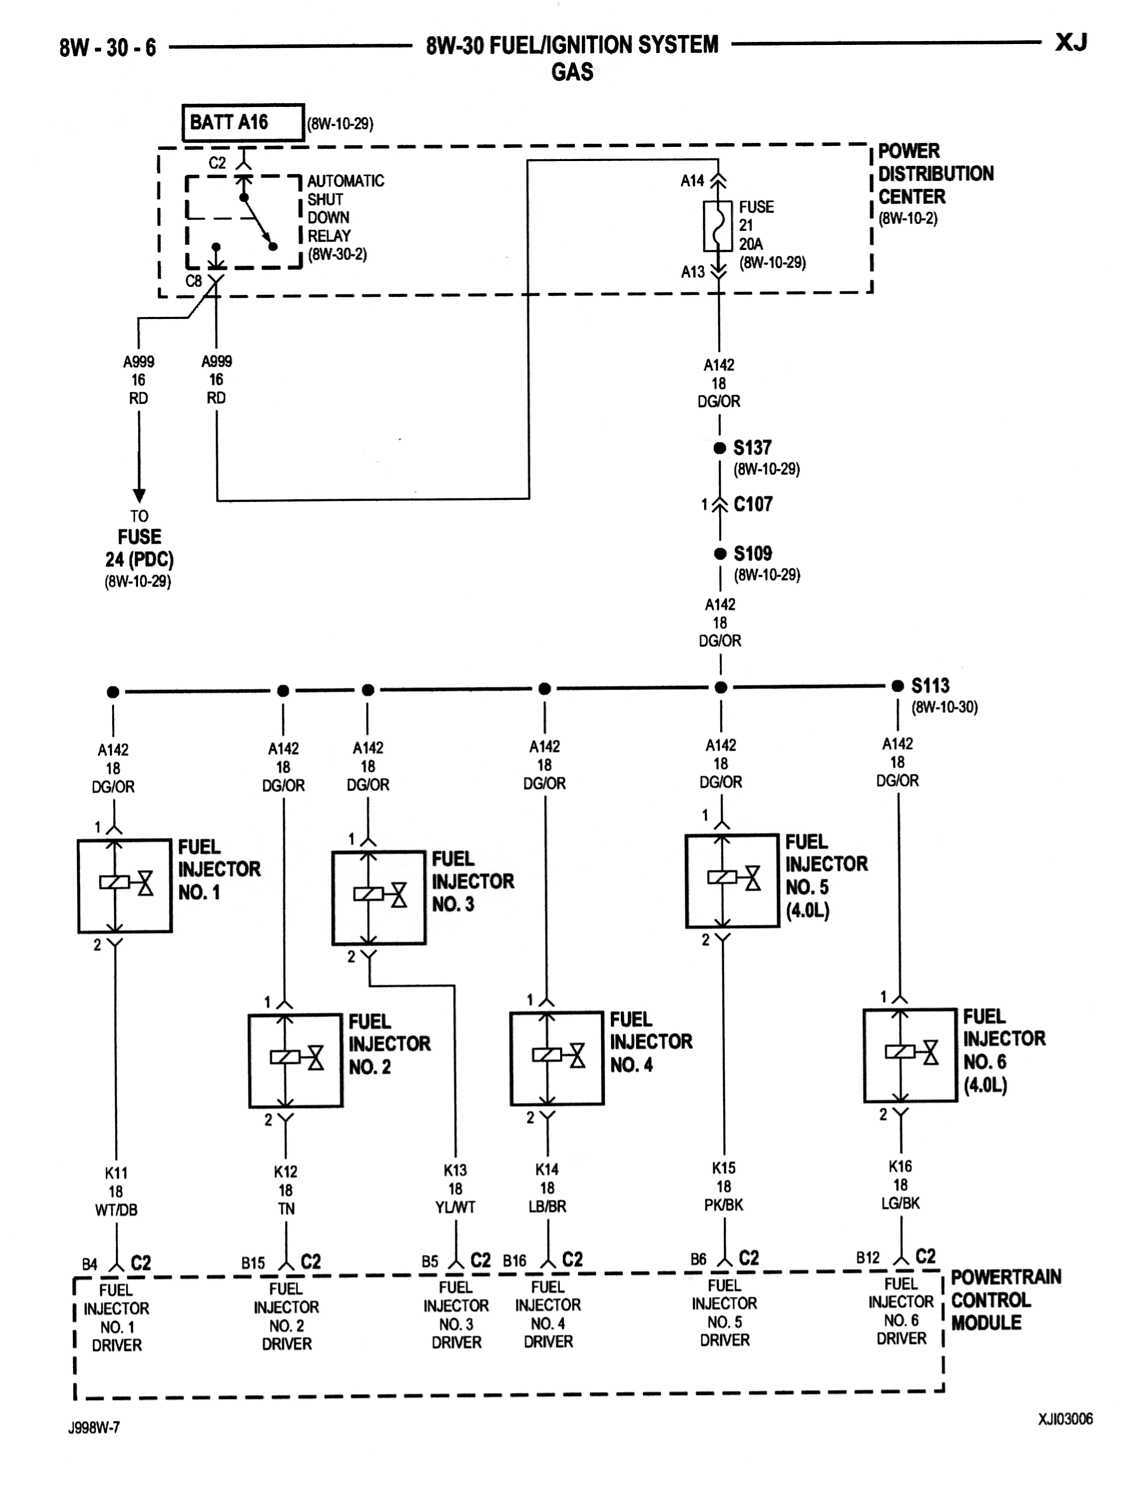 hight resolution of 1999 jeep grand cherokee 4 0l engine fuel injector diagram wiring 1999 jeep grand cherokee 4 0l engine fuel injector diagram